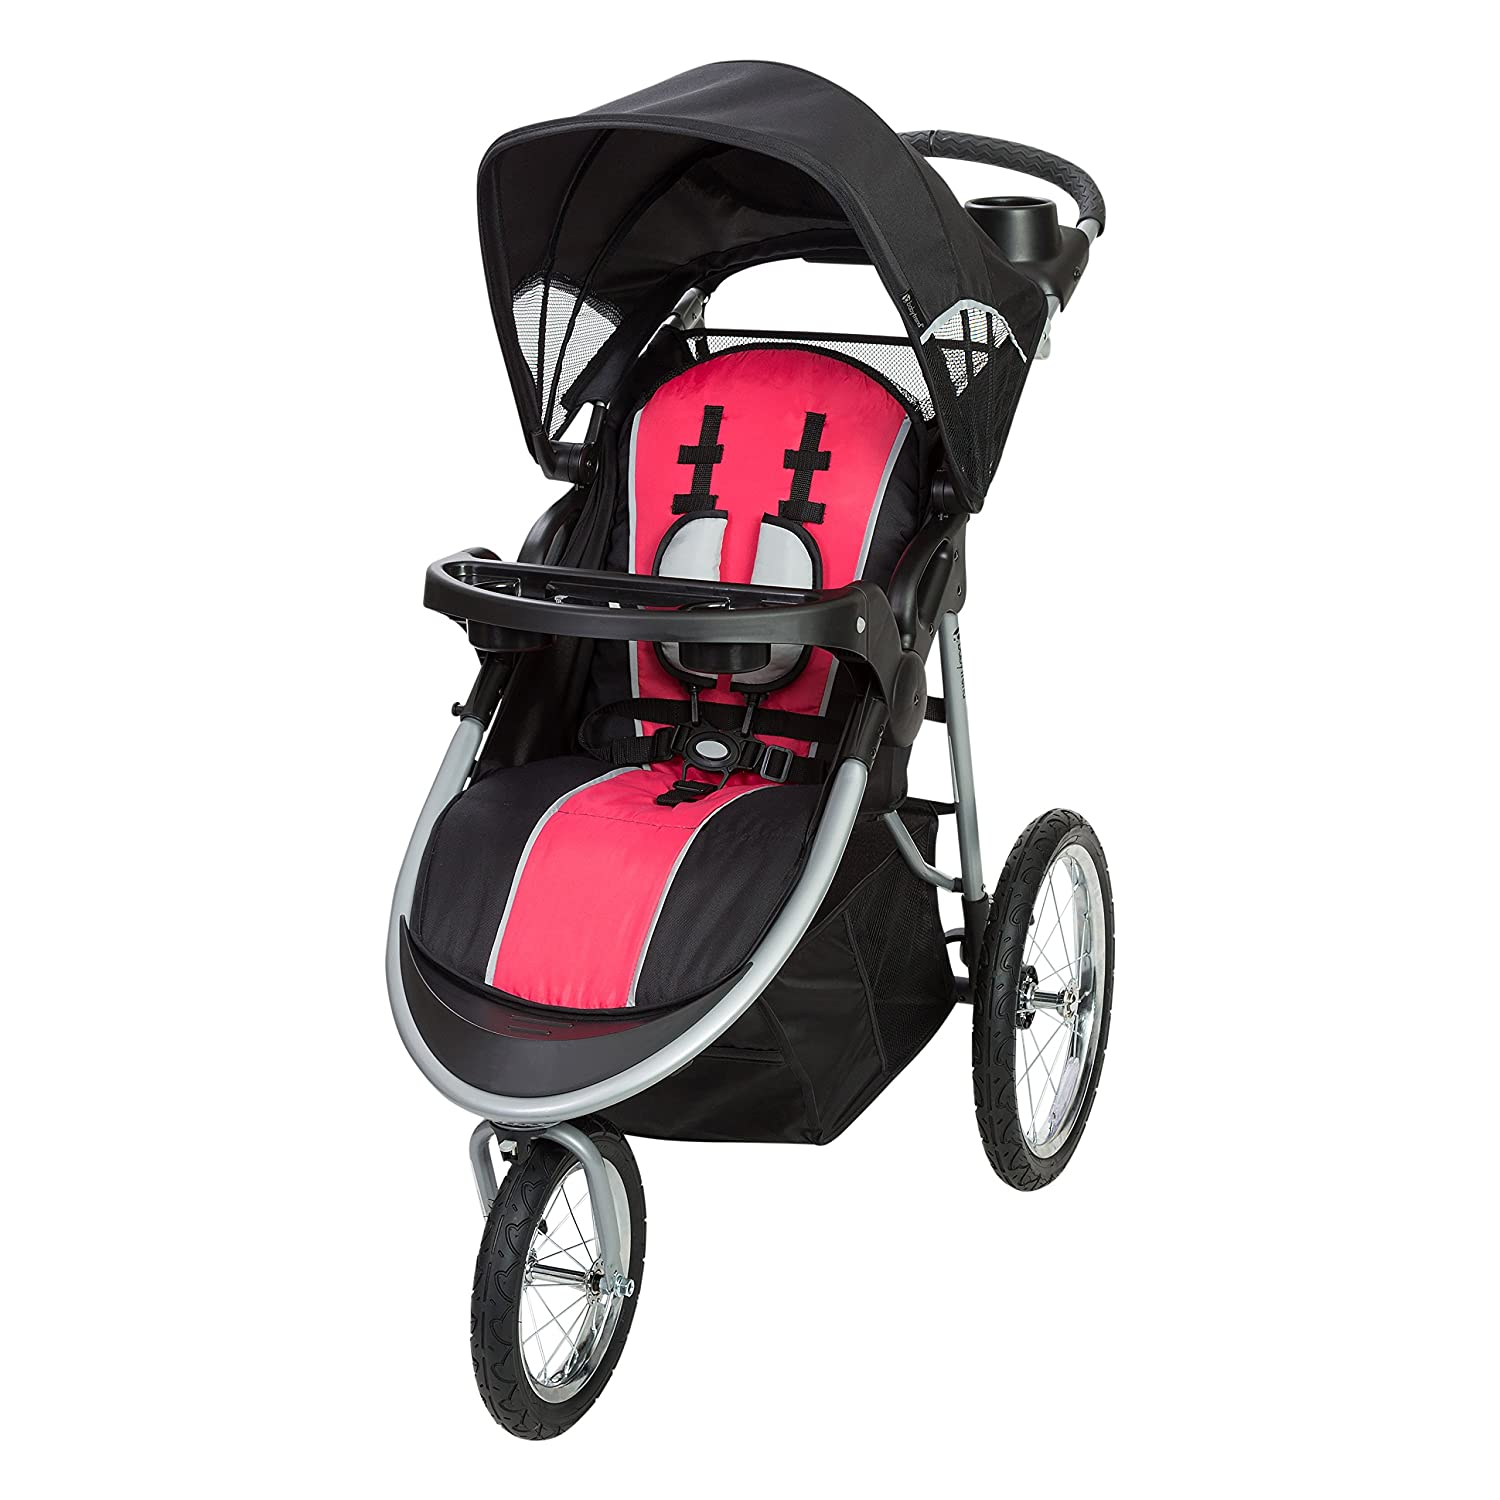 Baby Trend Pathway 35 Jogger Stroller, Optic Pink JG75B72A